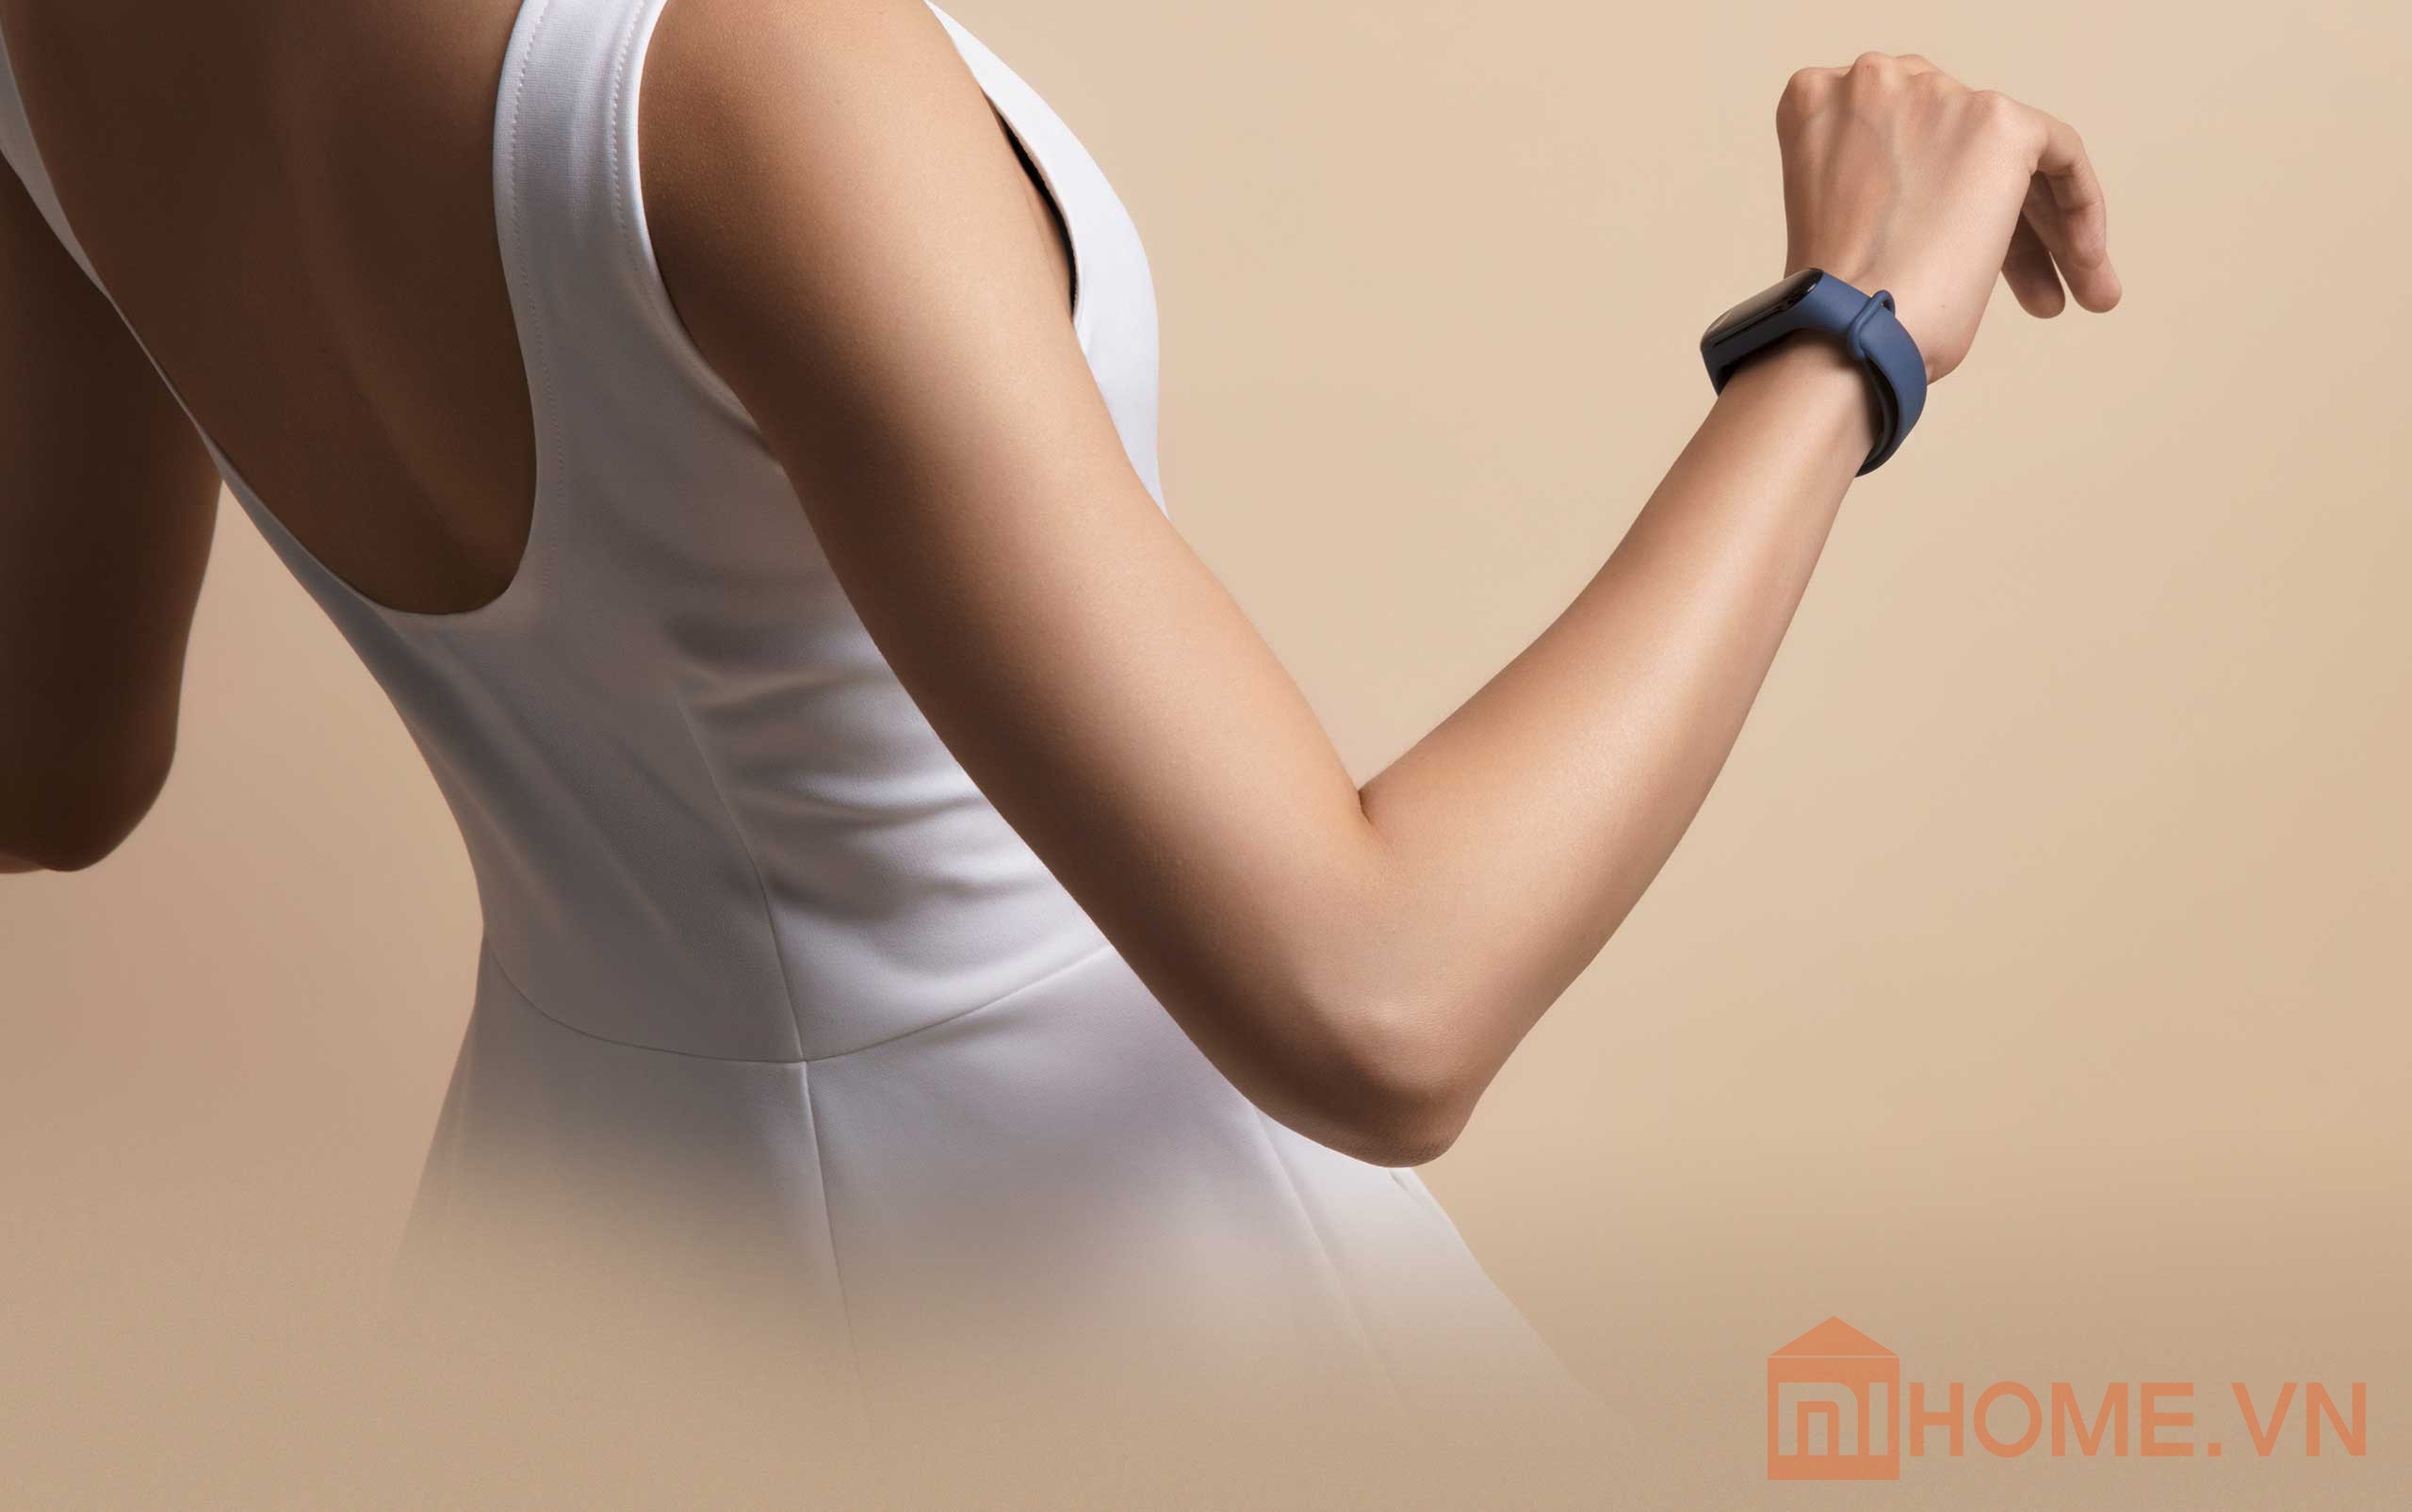 vong deo tay miband3 11